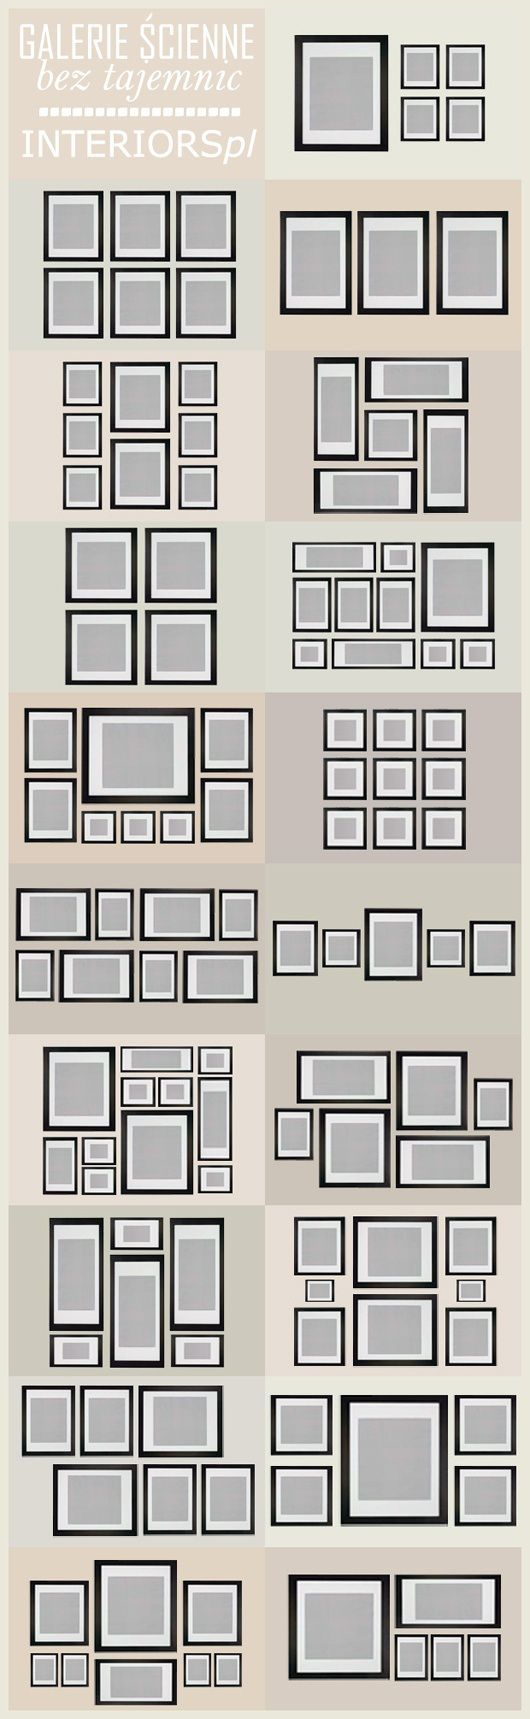 Wall art arrangement templates... Will be really helpful for putting together a photo gallery going up our staircase.